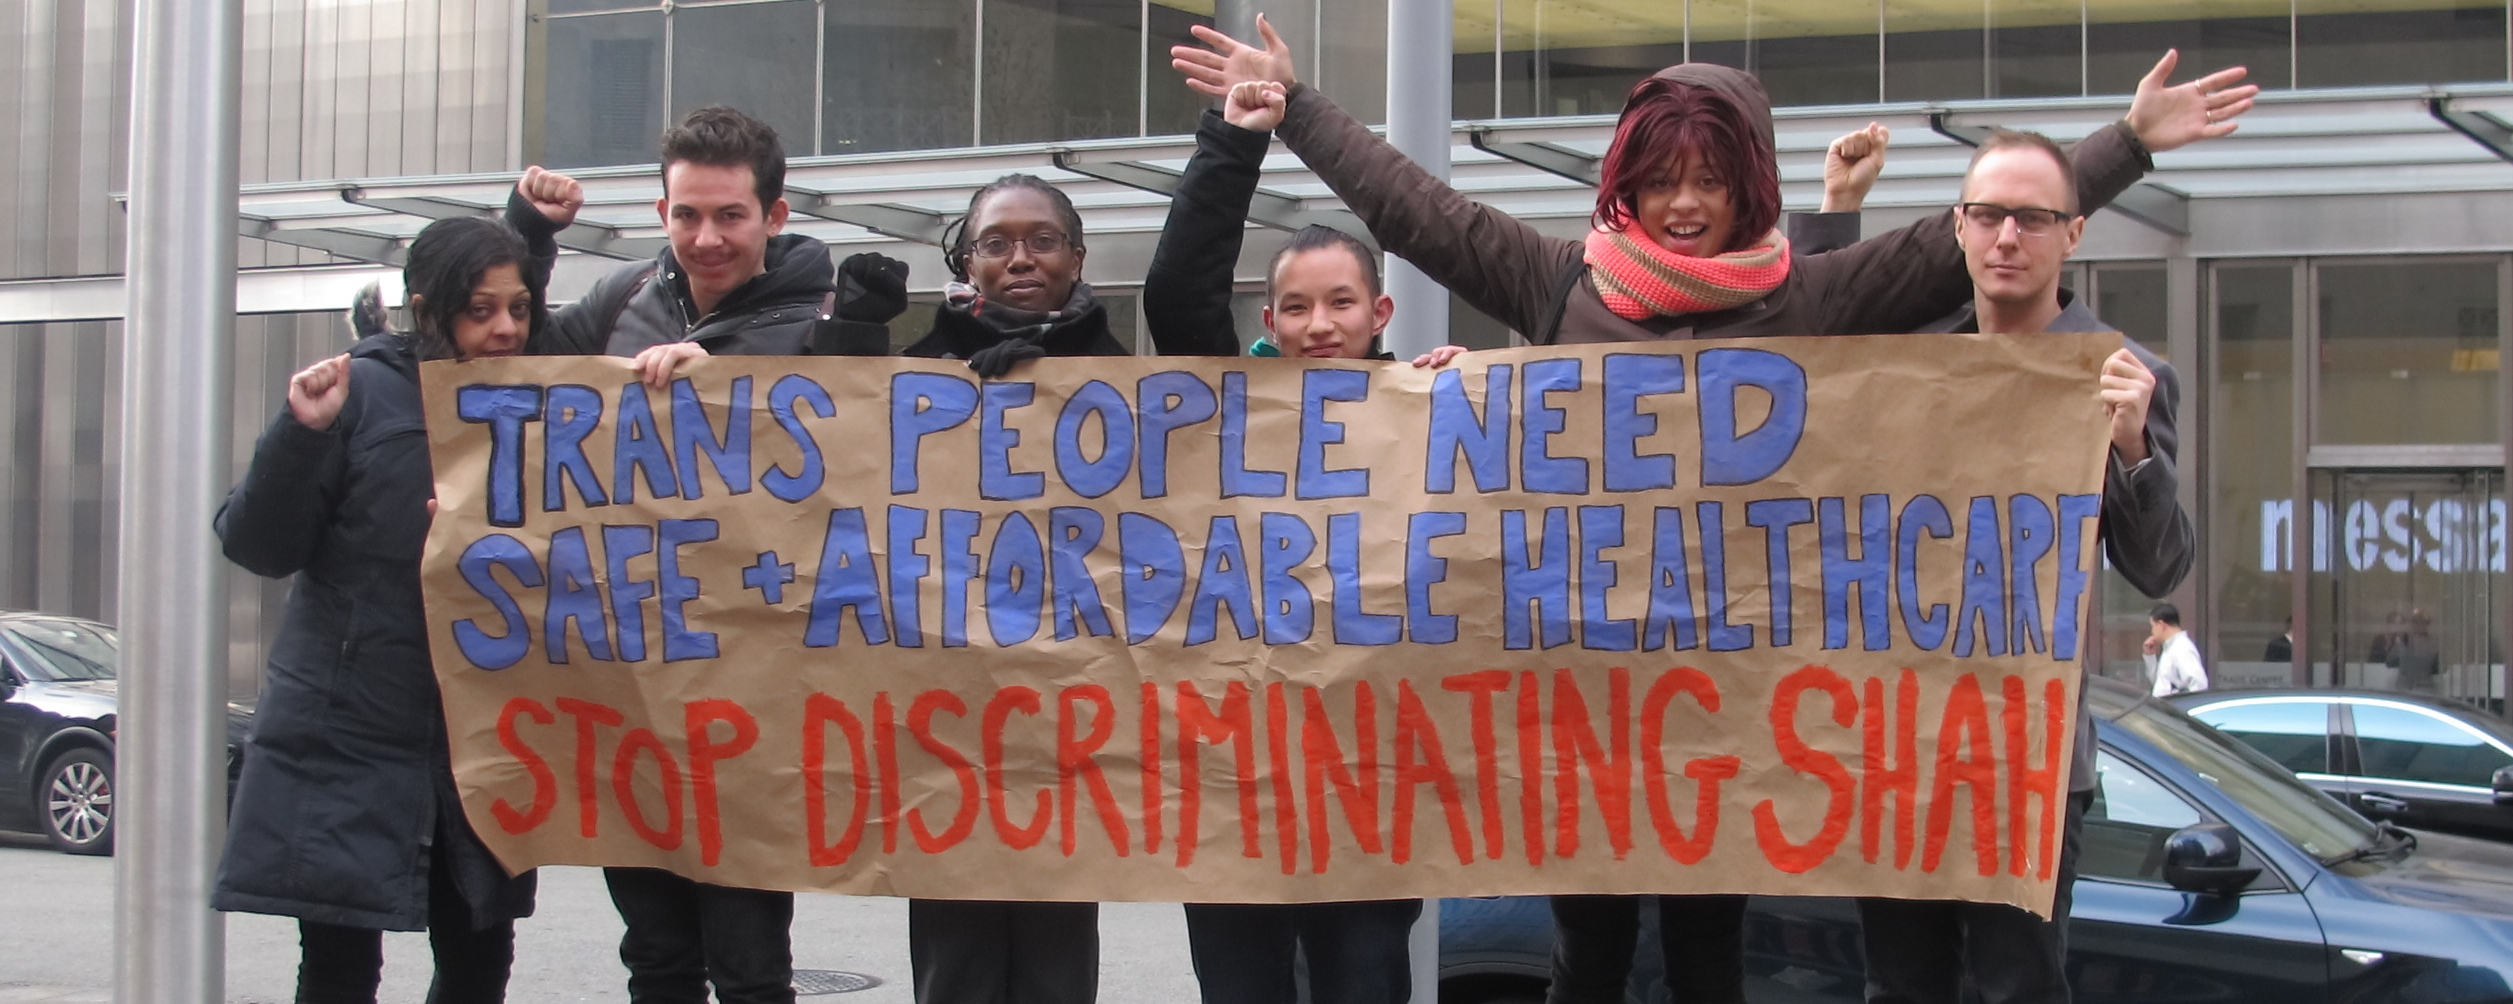 Trans People Need Safe and Affordable Healthcare Stop Discriminating Commissioner Shah!